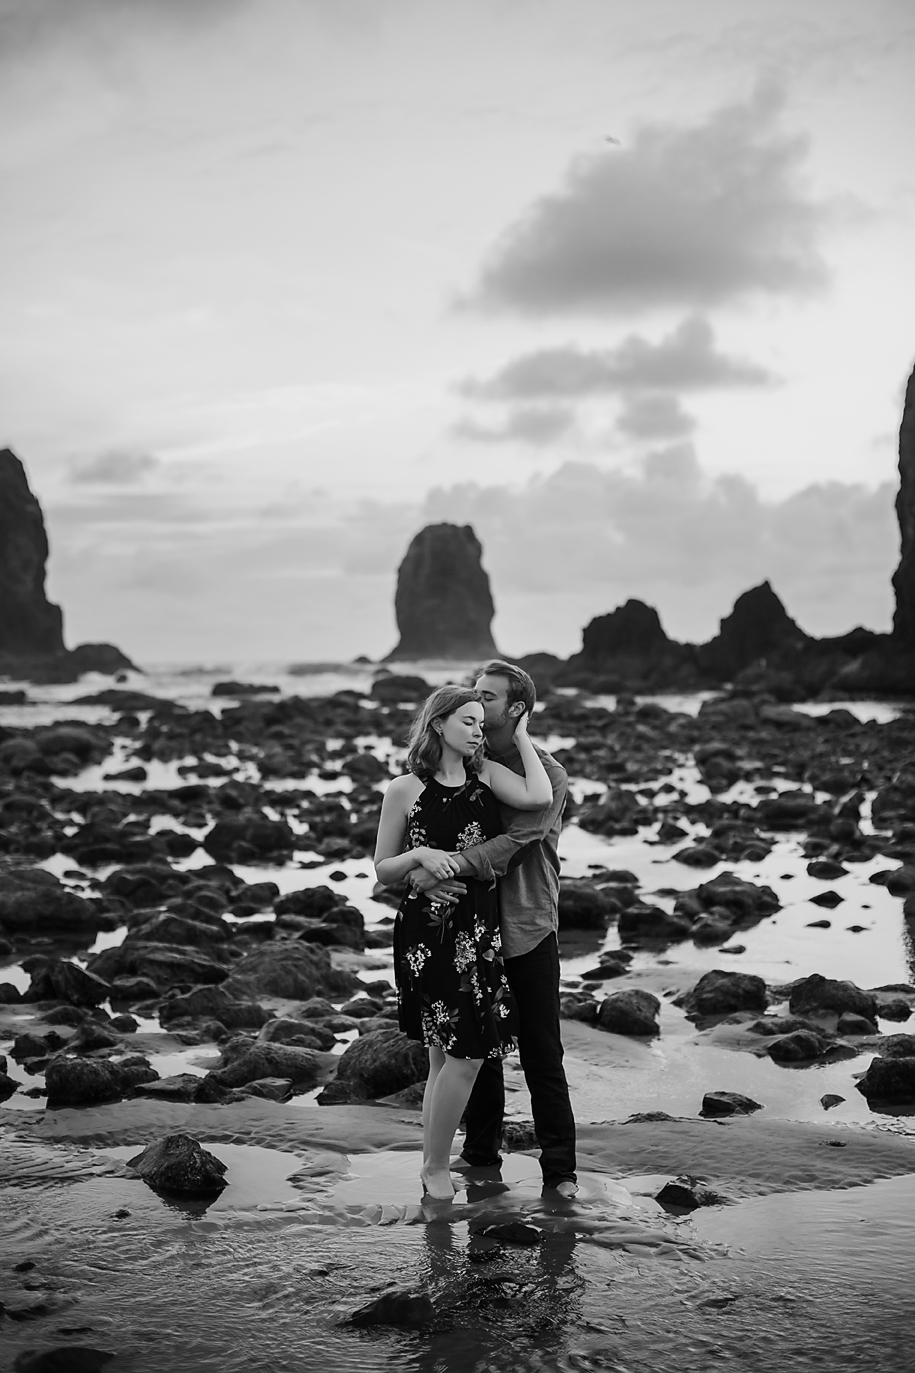 Amanda + Matt - Oregon Coast Engagement Photographer - Destination Elopement Photographer - Emily & Co. Photography (17).jpg